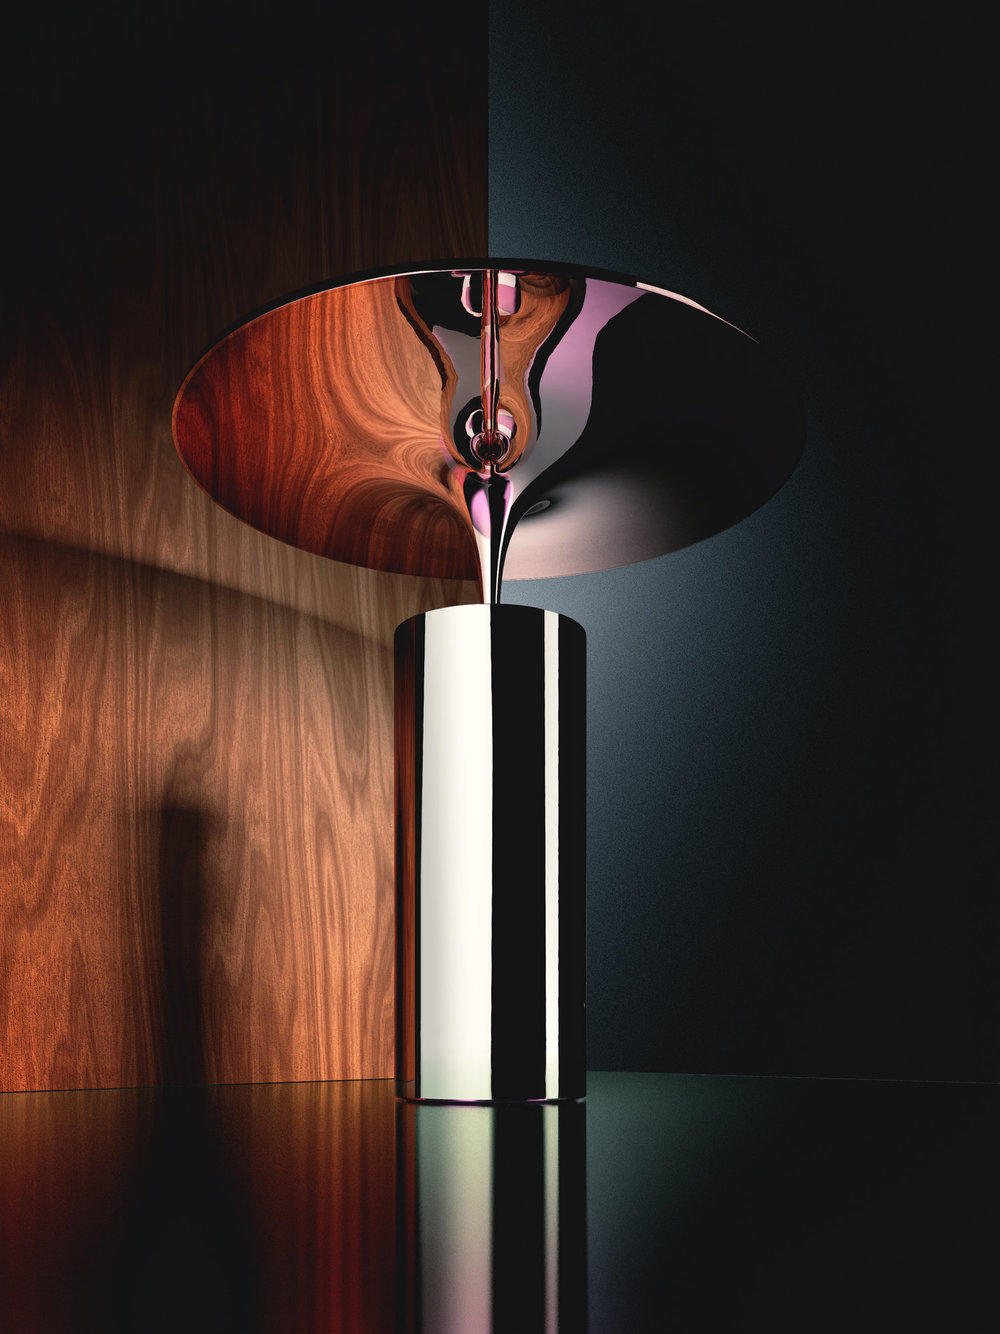 REFLECTION Lamp Design